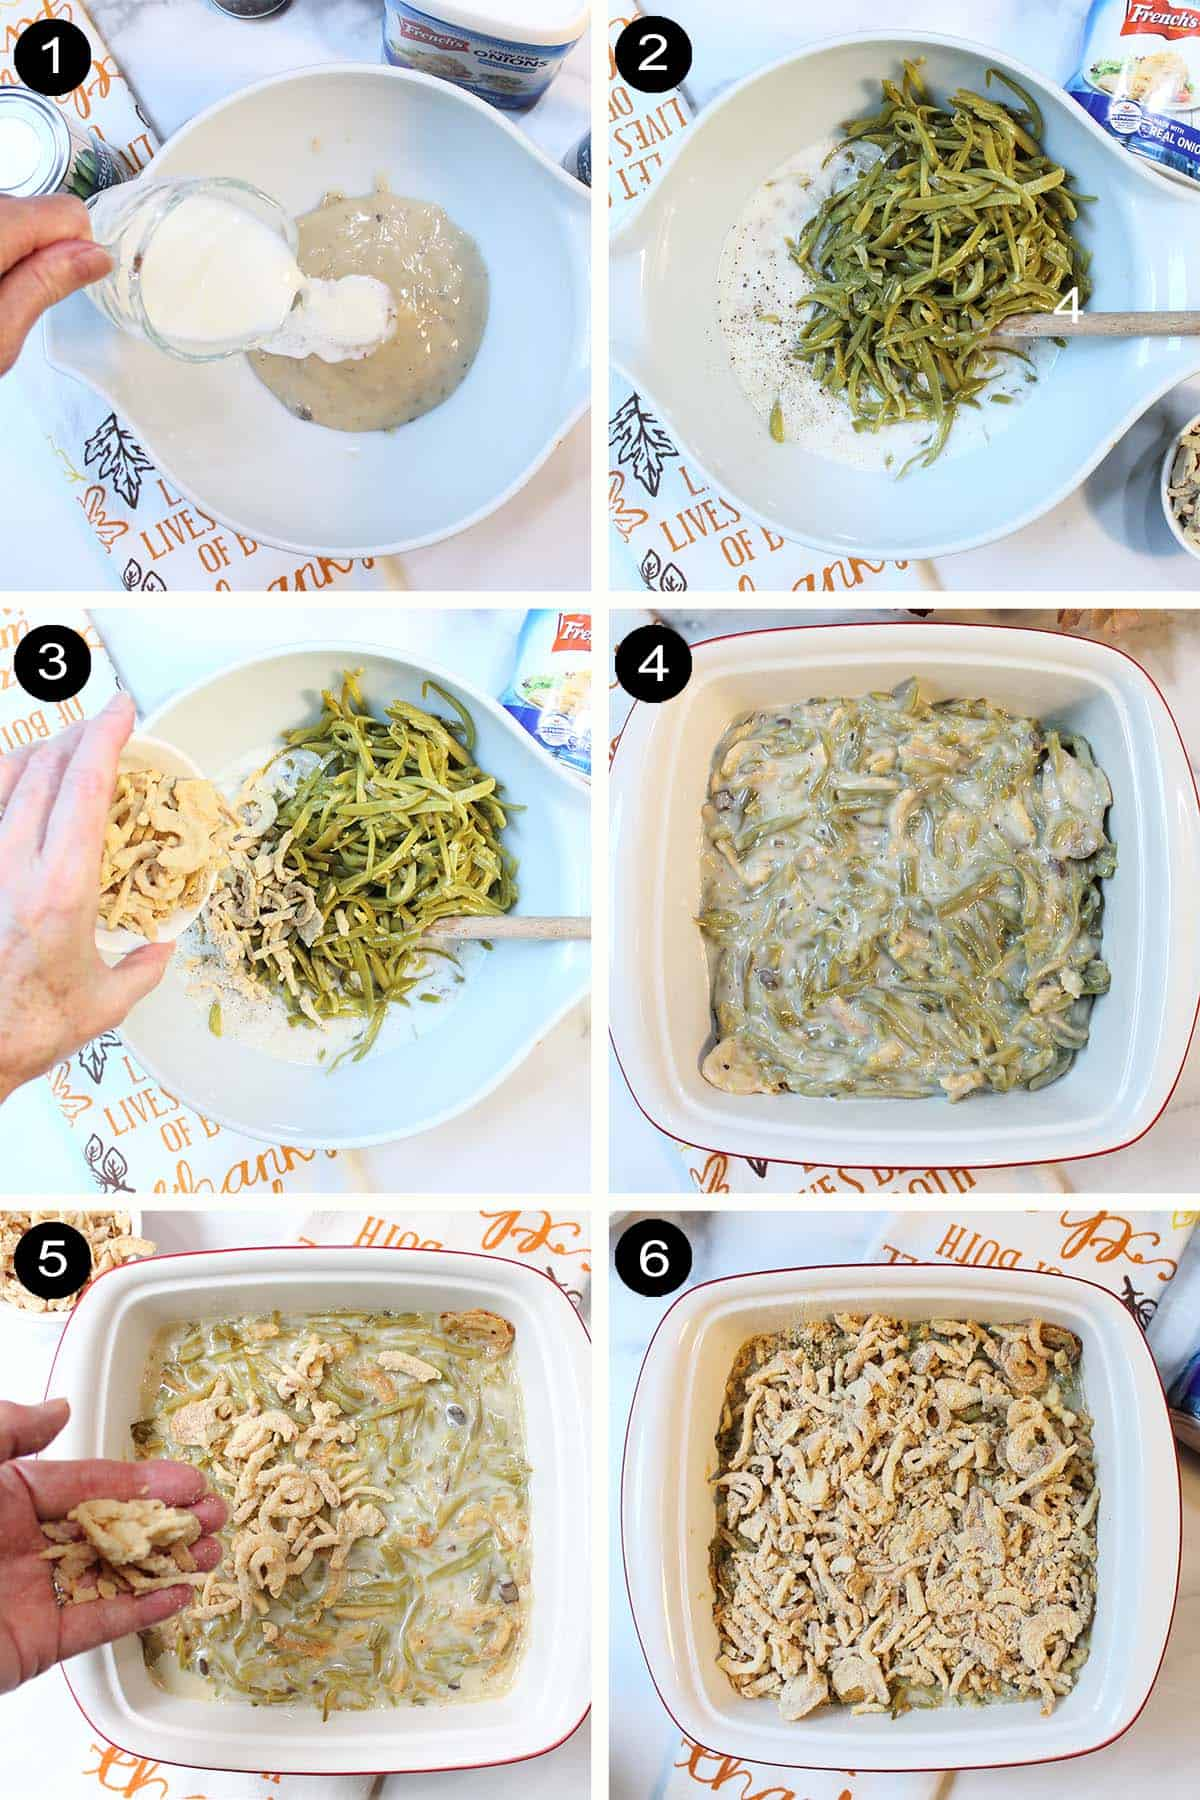 Prep steps for casserole.